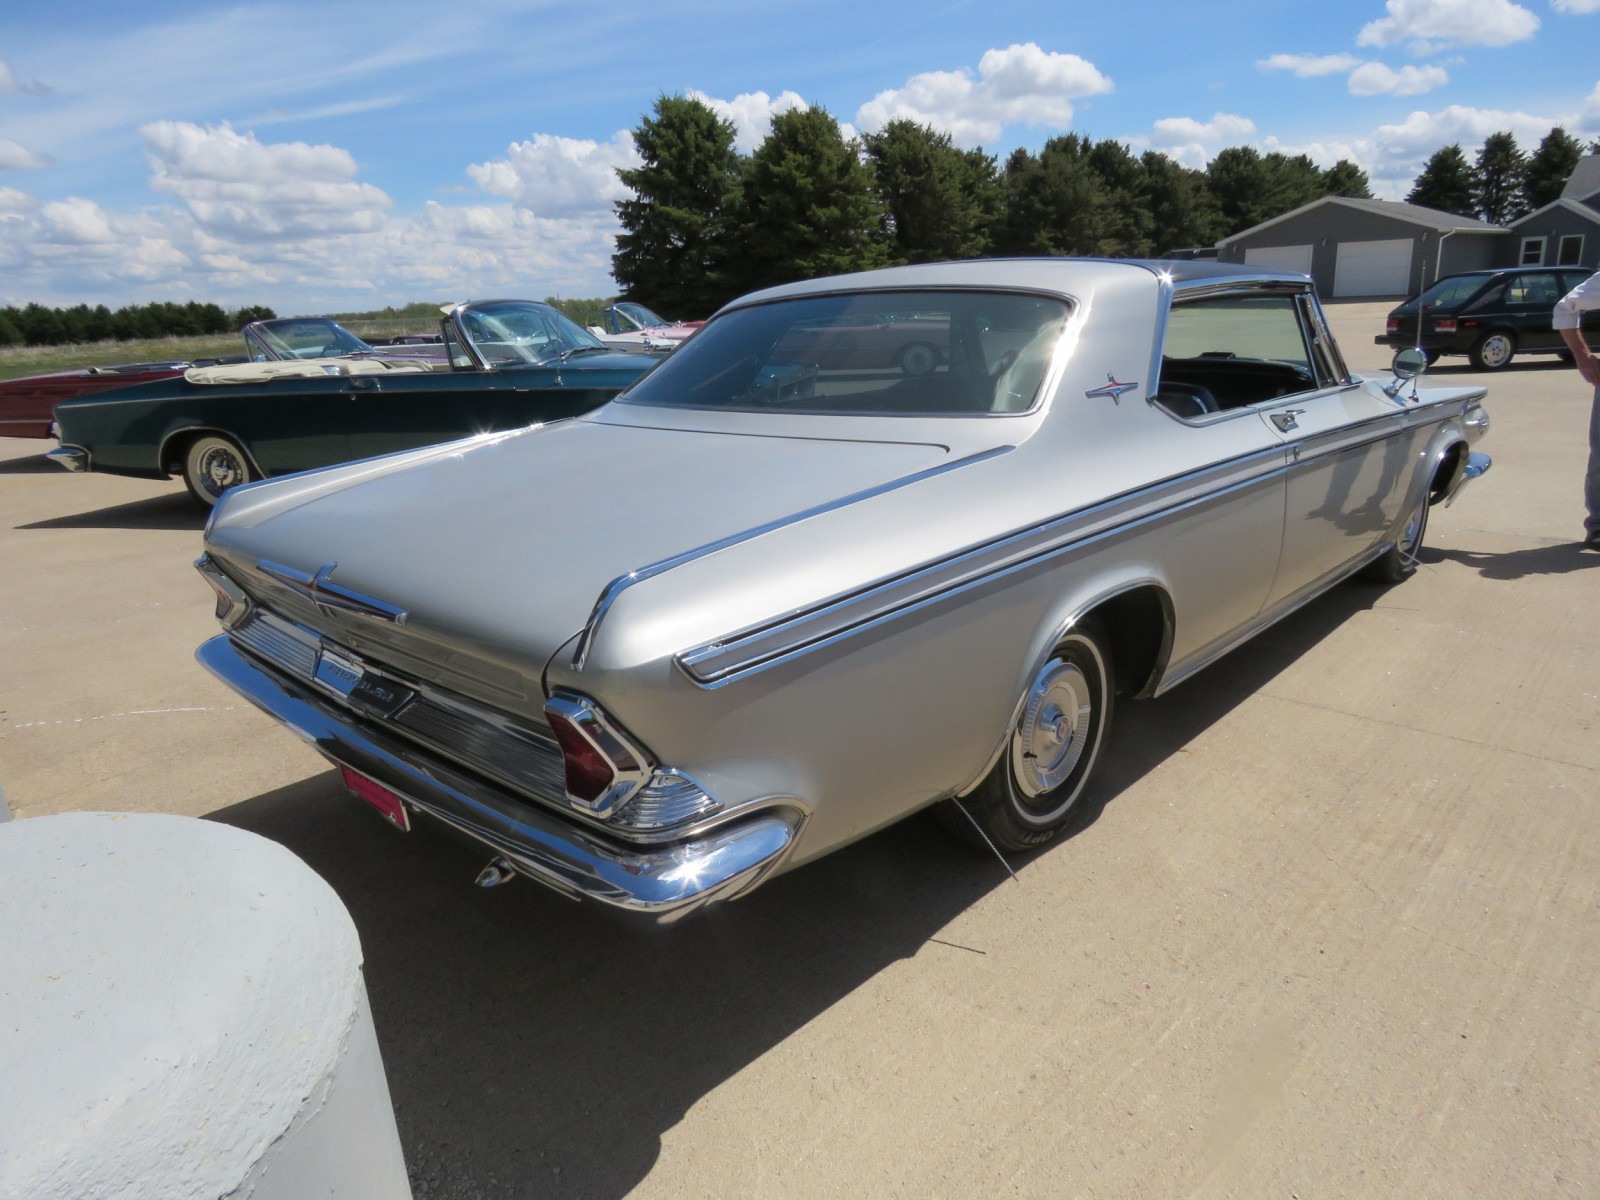 1964 Chrysler 300 Silver Edition 2dr HT - Image 6